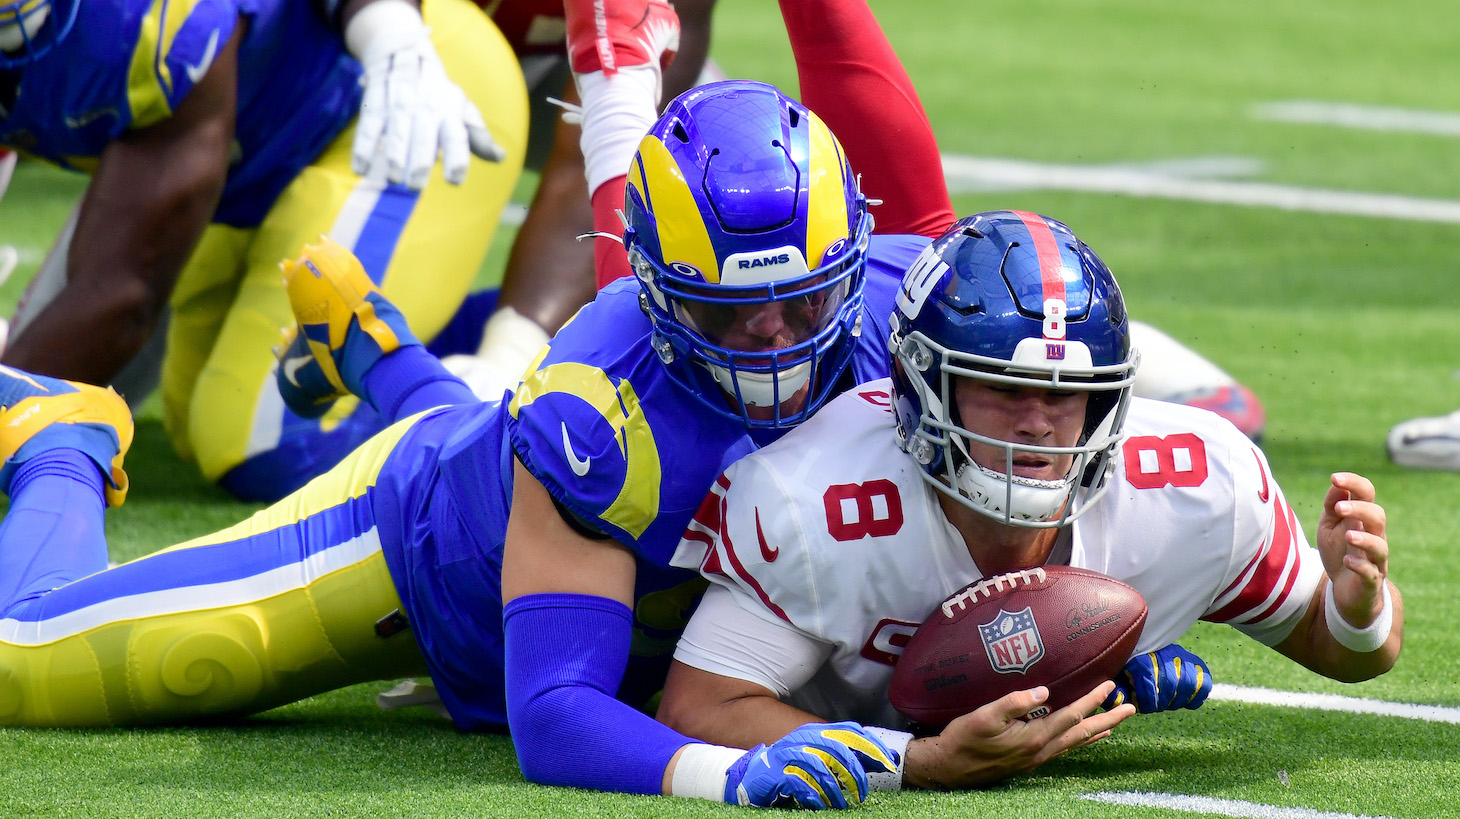 INGLEWOOD, CALIFORNIA - OCTOBER 04: Daniel Jones #8 of the New York Giants recovers his fumble as he is sacked by Morgan Fox #97 of the Los Angeles Rams during the first half at SoFi Stadium on October 04, 2020 in Inglewood, California. (Photo by Harry How/Getty Images)